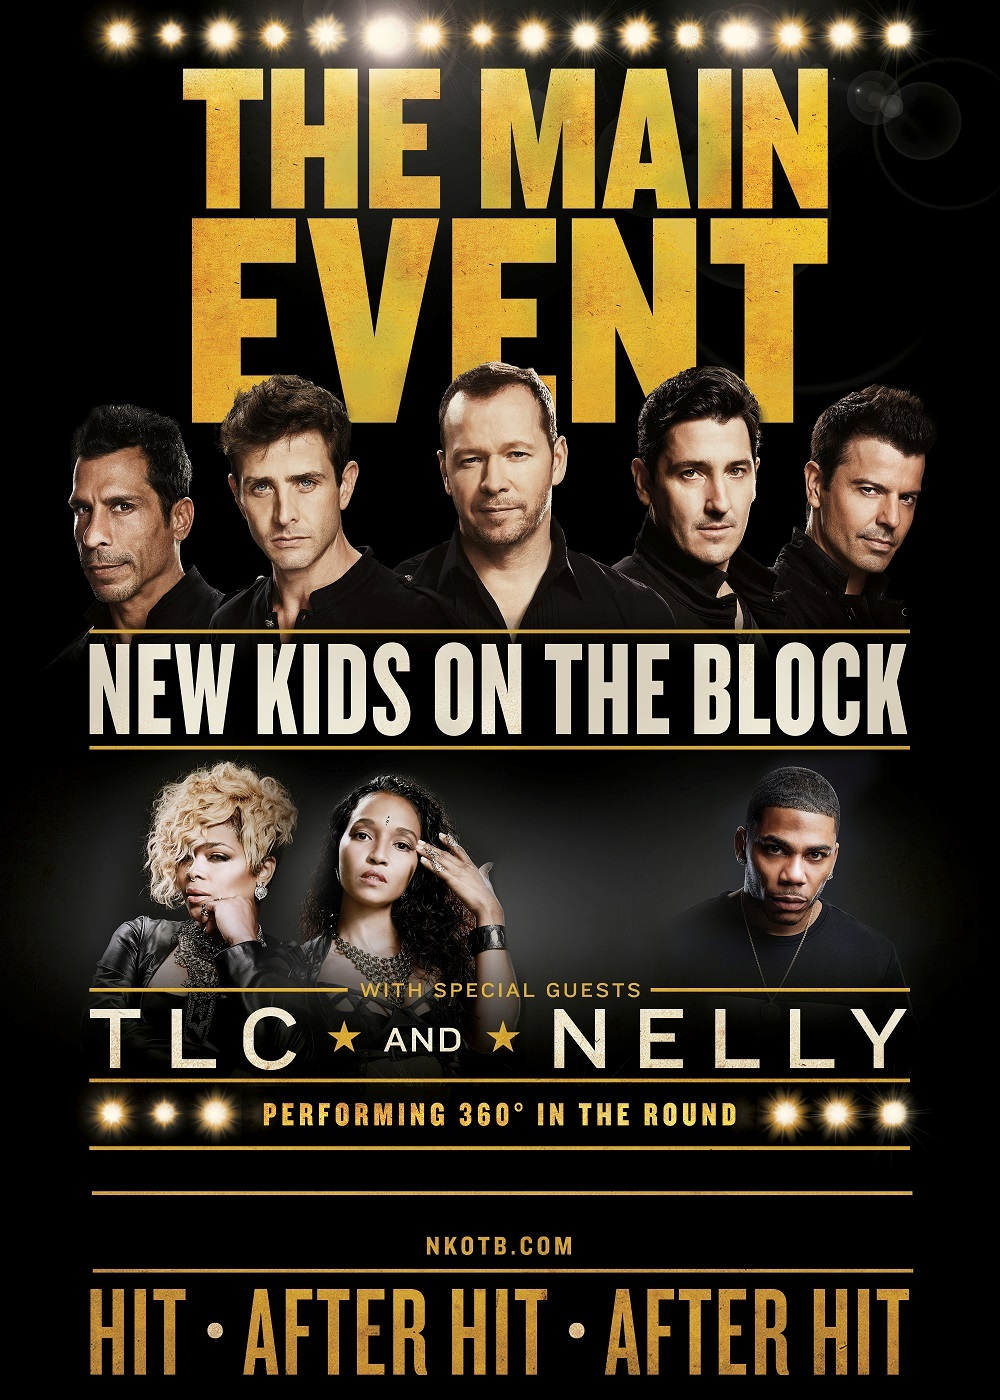 Have you got the right stuff? Win New Kids On The Block Tickets!